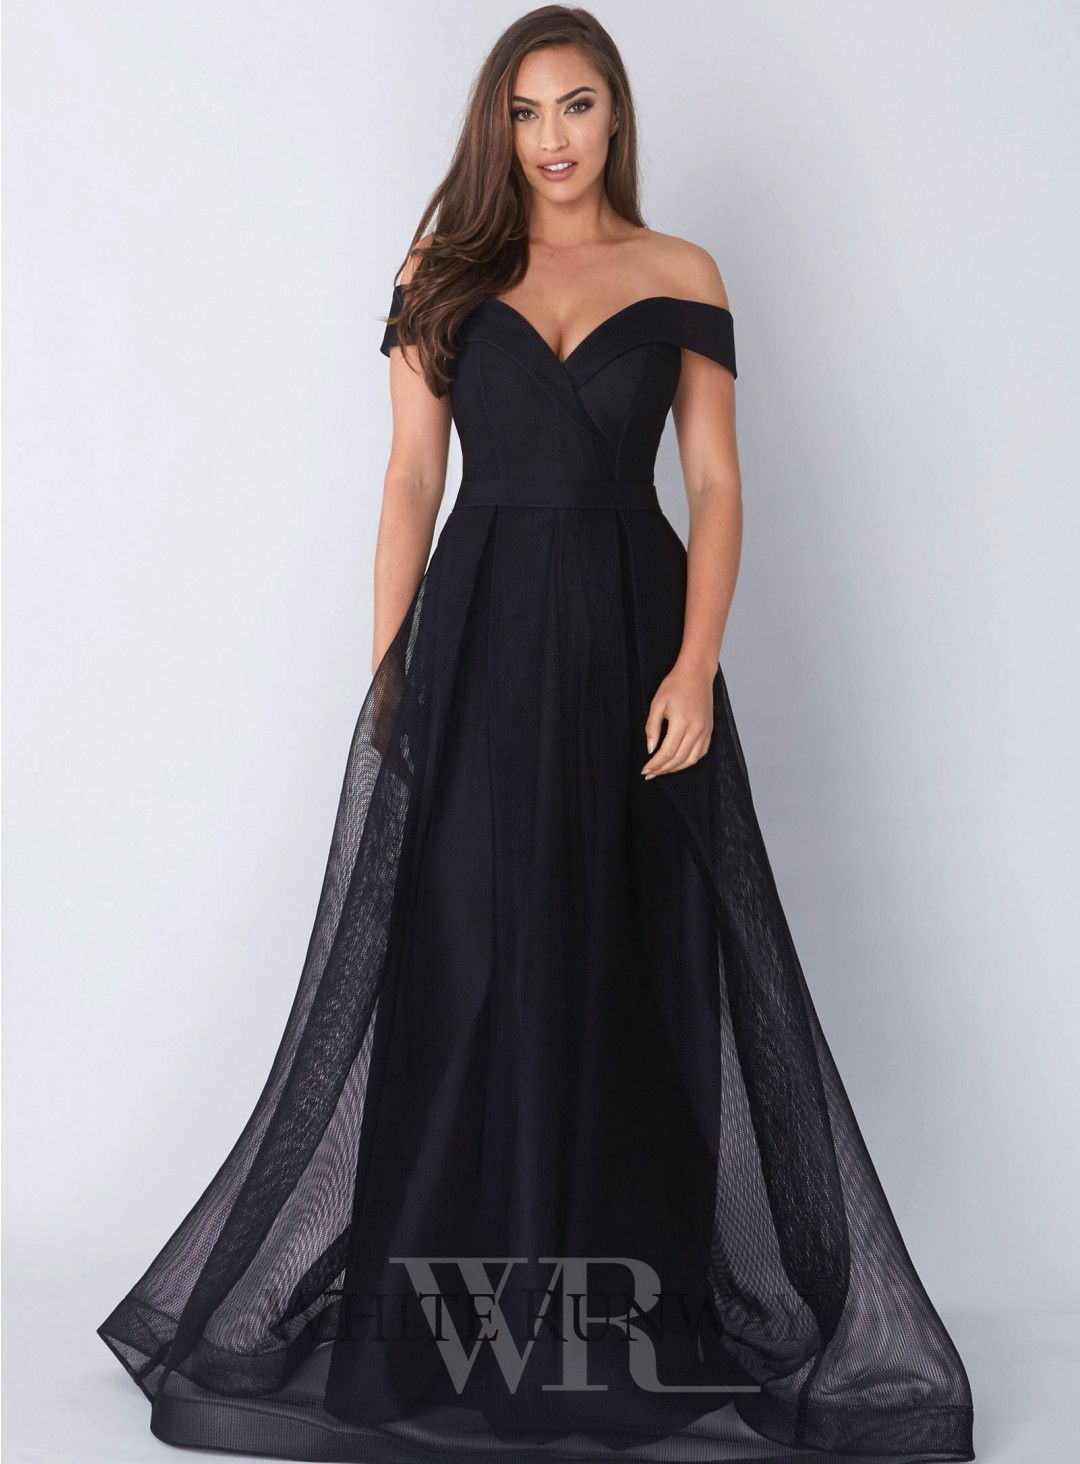 Dress for wedding party female  Prima Dress   quence  Pinterest  Dresses Gowns and Full